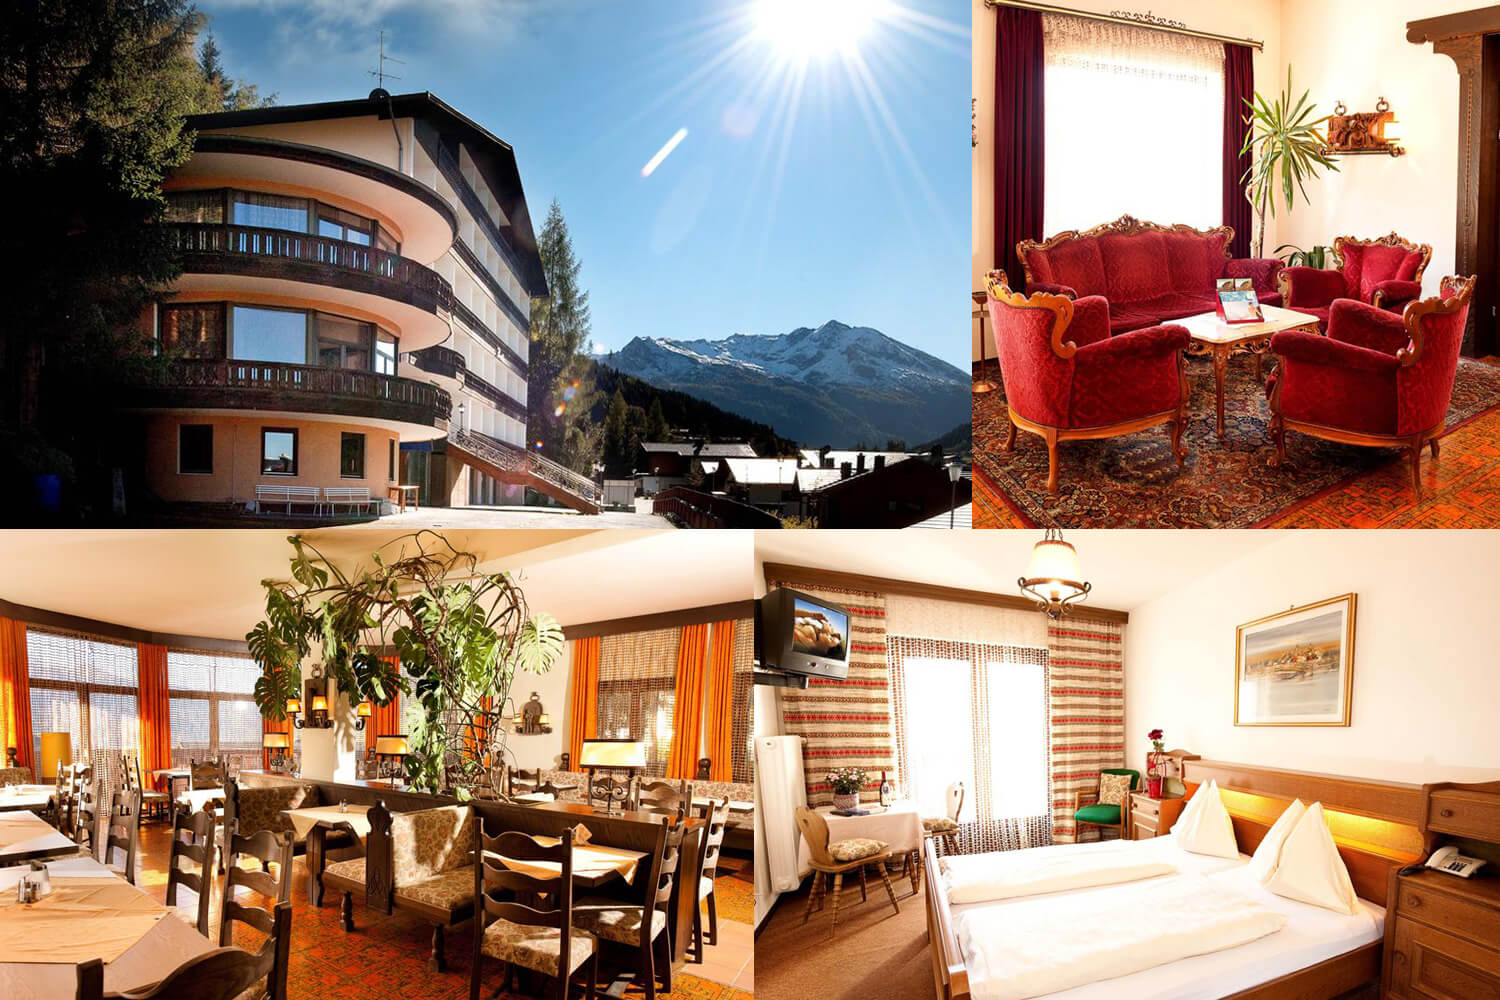 4 Tage Kurzurlaub Halbpension im Panoramahotel Pawlik in Bad Gastein - 15.12. - 29.12.2018 &  05.01. - 09.02.2019 &  09.03. - 30.03.2019